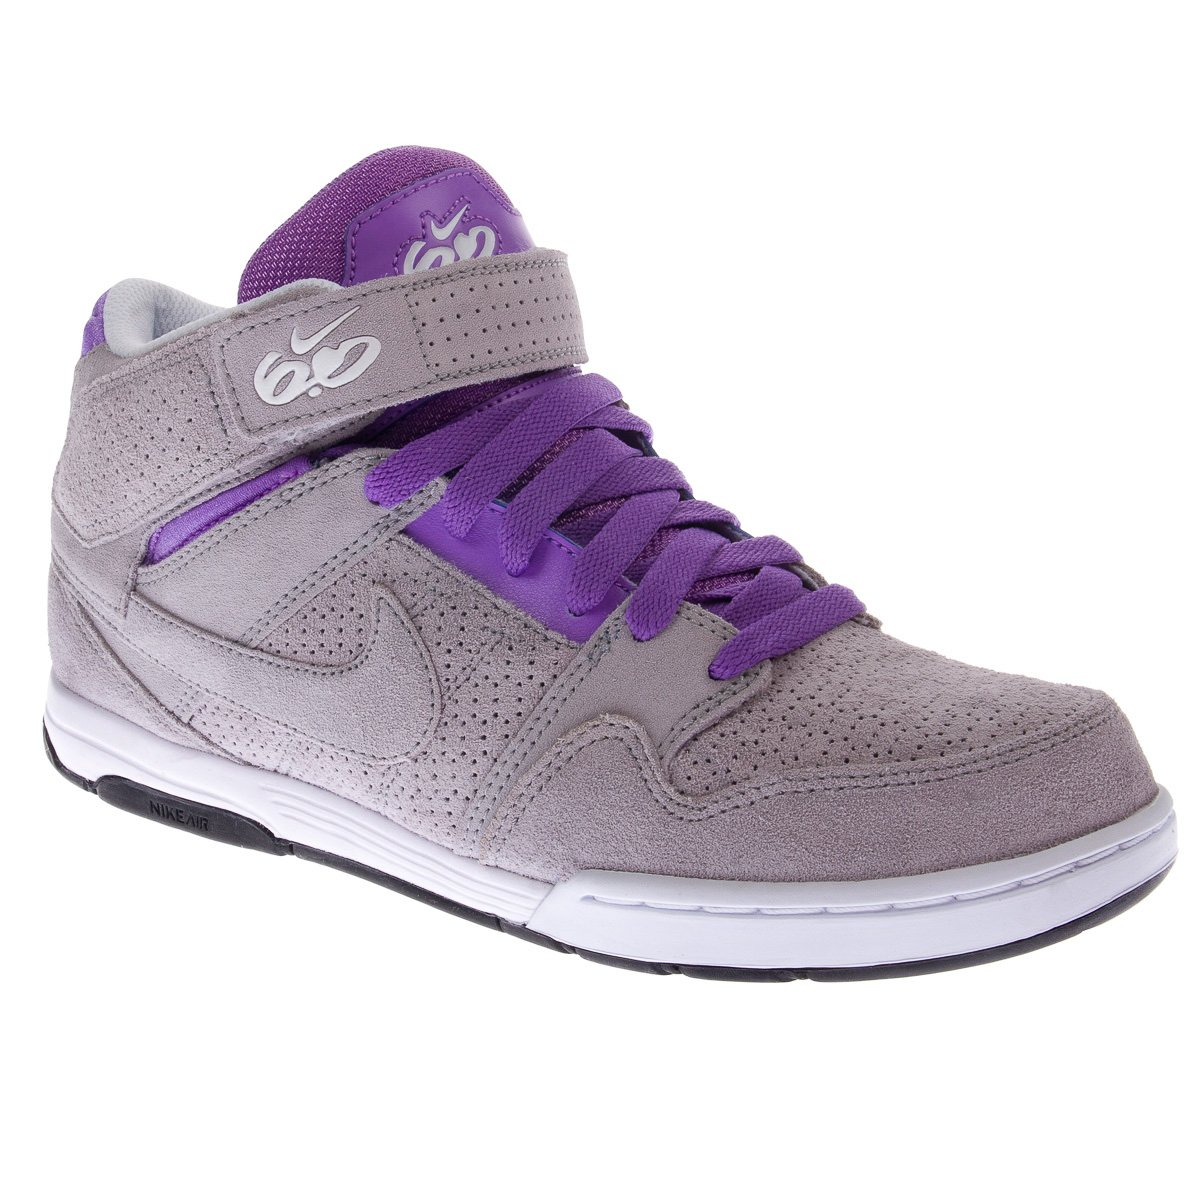 NIKE AIR MOGAN MID 2. Gr 42. Neu. 407479 003.: